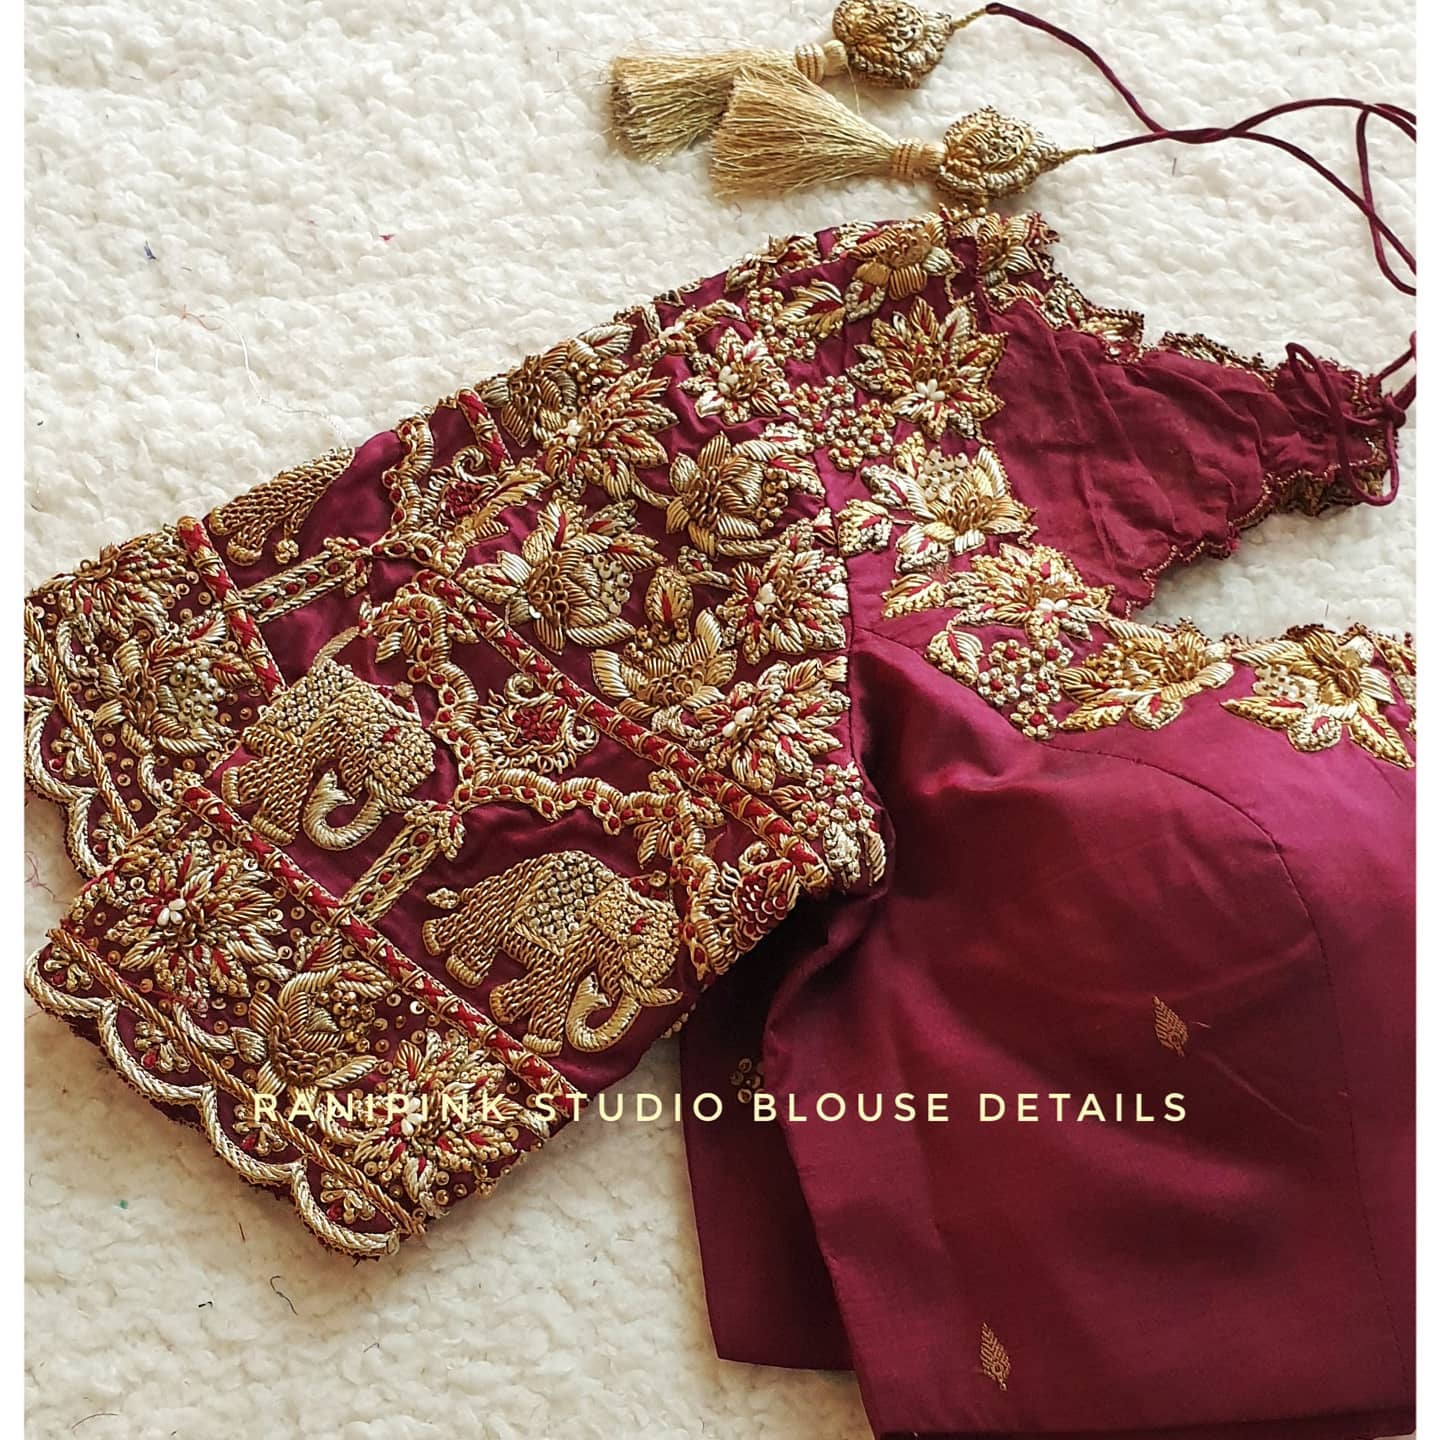 Muhurutham blouse 2021!! Stunning wine color wedding blouse with floral and elephant heavy maggam work.  For appointments call or whatapp us at 8884620620 2021-06-23